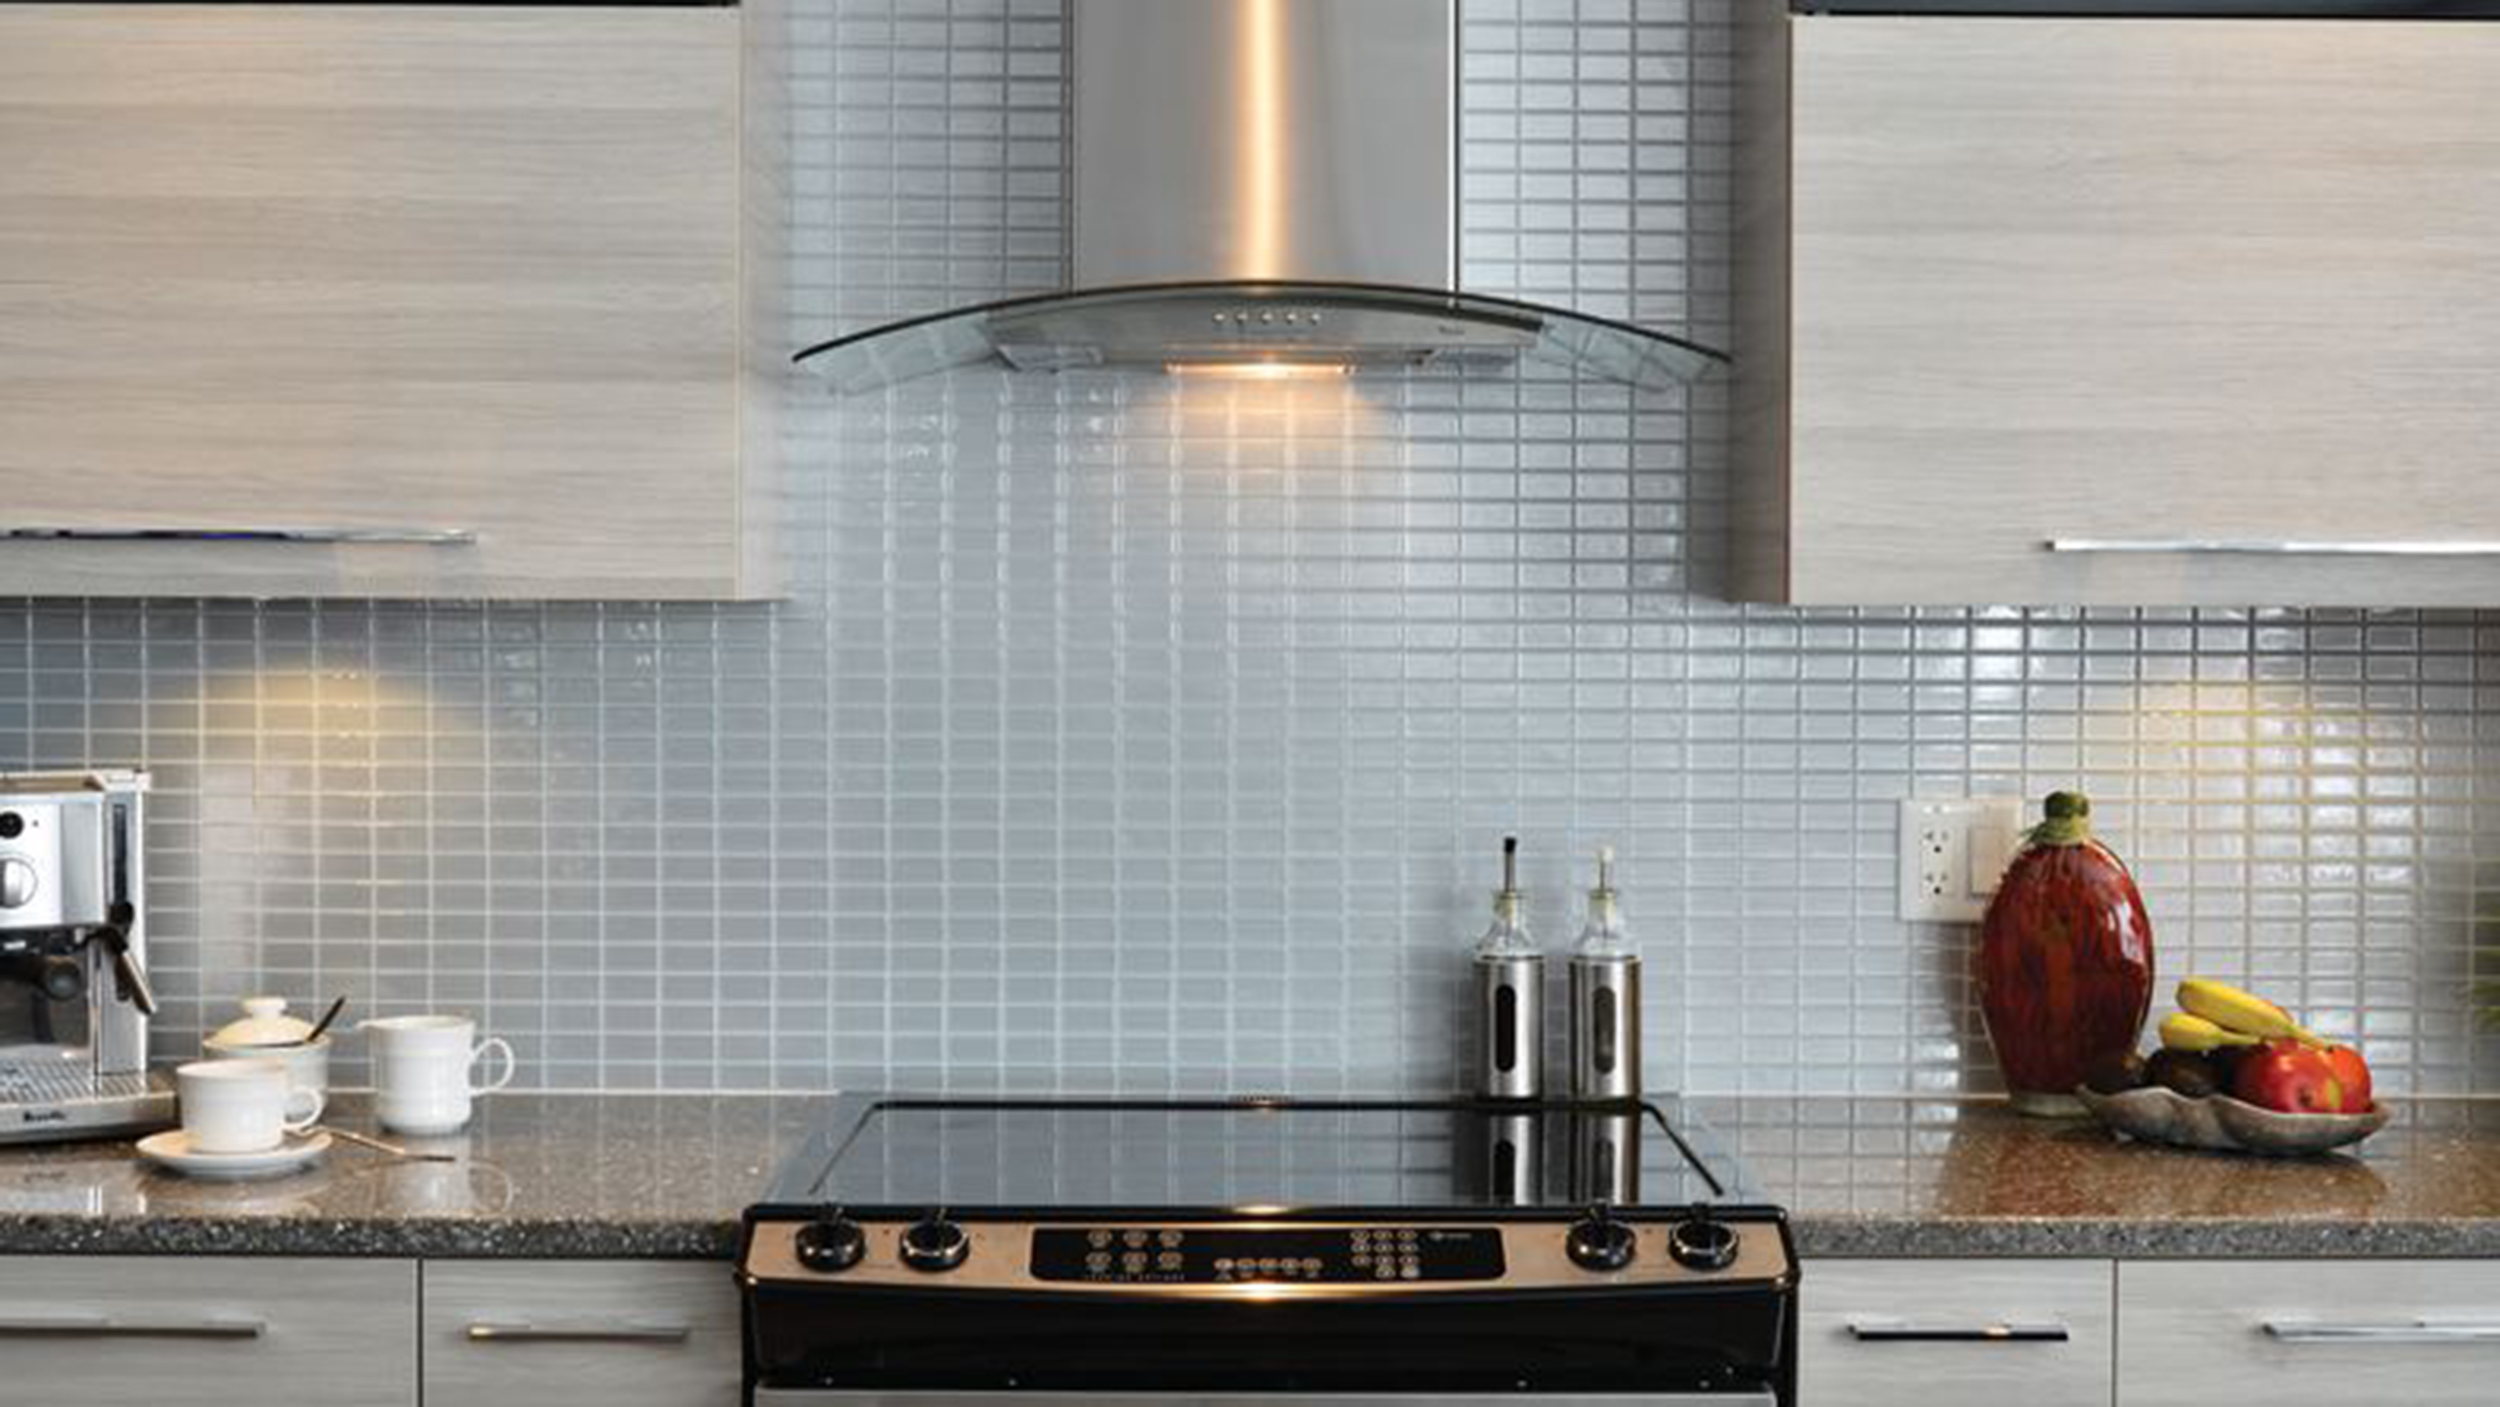 Kitchen tile makeover: Use Smart Tiles to update your backsplash ...